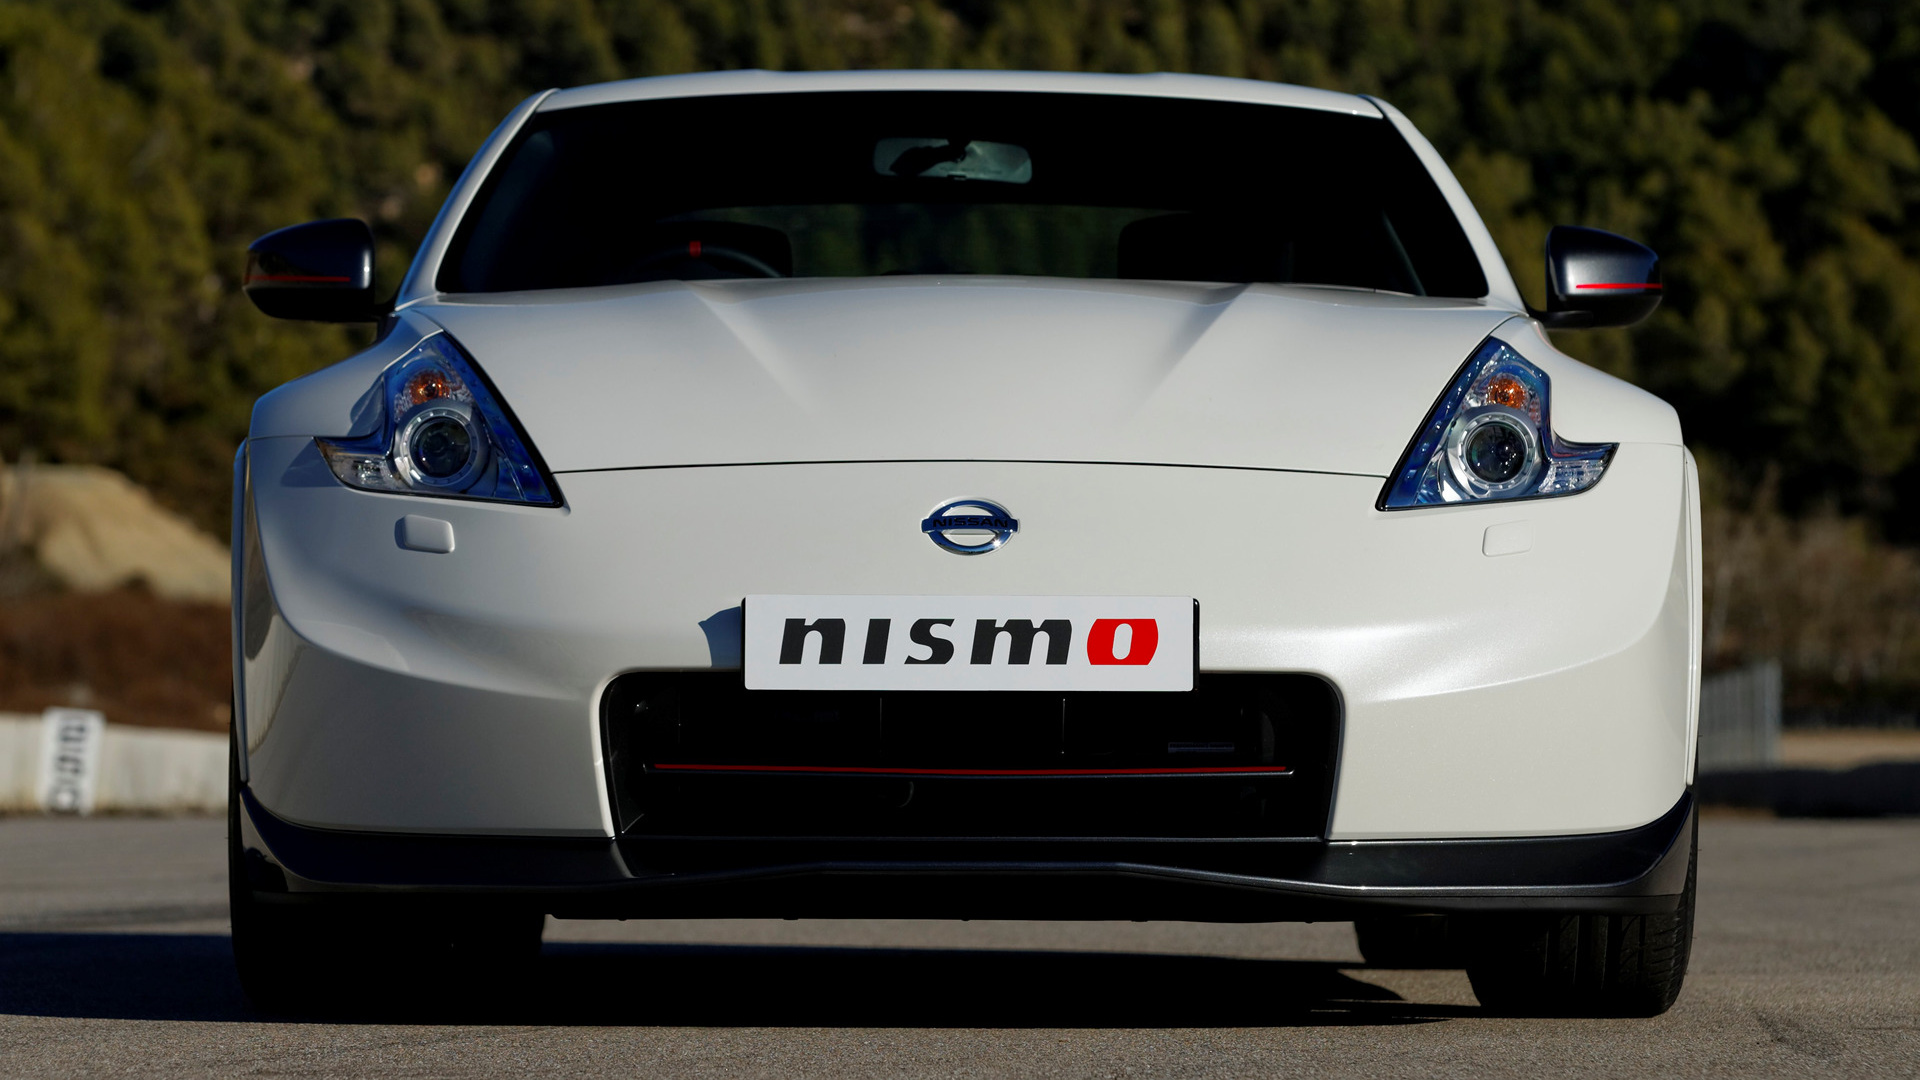 Nissan 370z nismo 2013 uk wallpapers and hd images car pixel wallpapers nissan 370z nismo 2013 uk thumbnail 13097 13097 hd 169 vanachro Choice Image